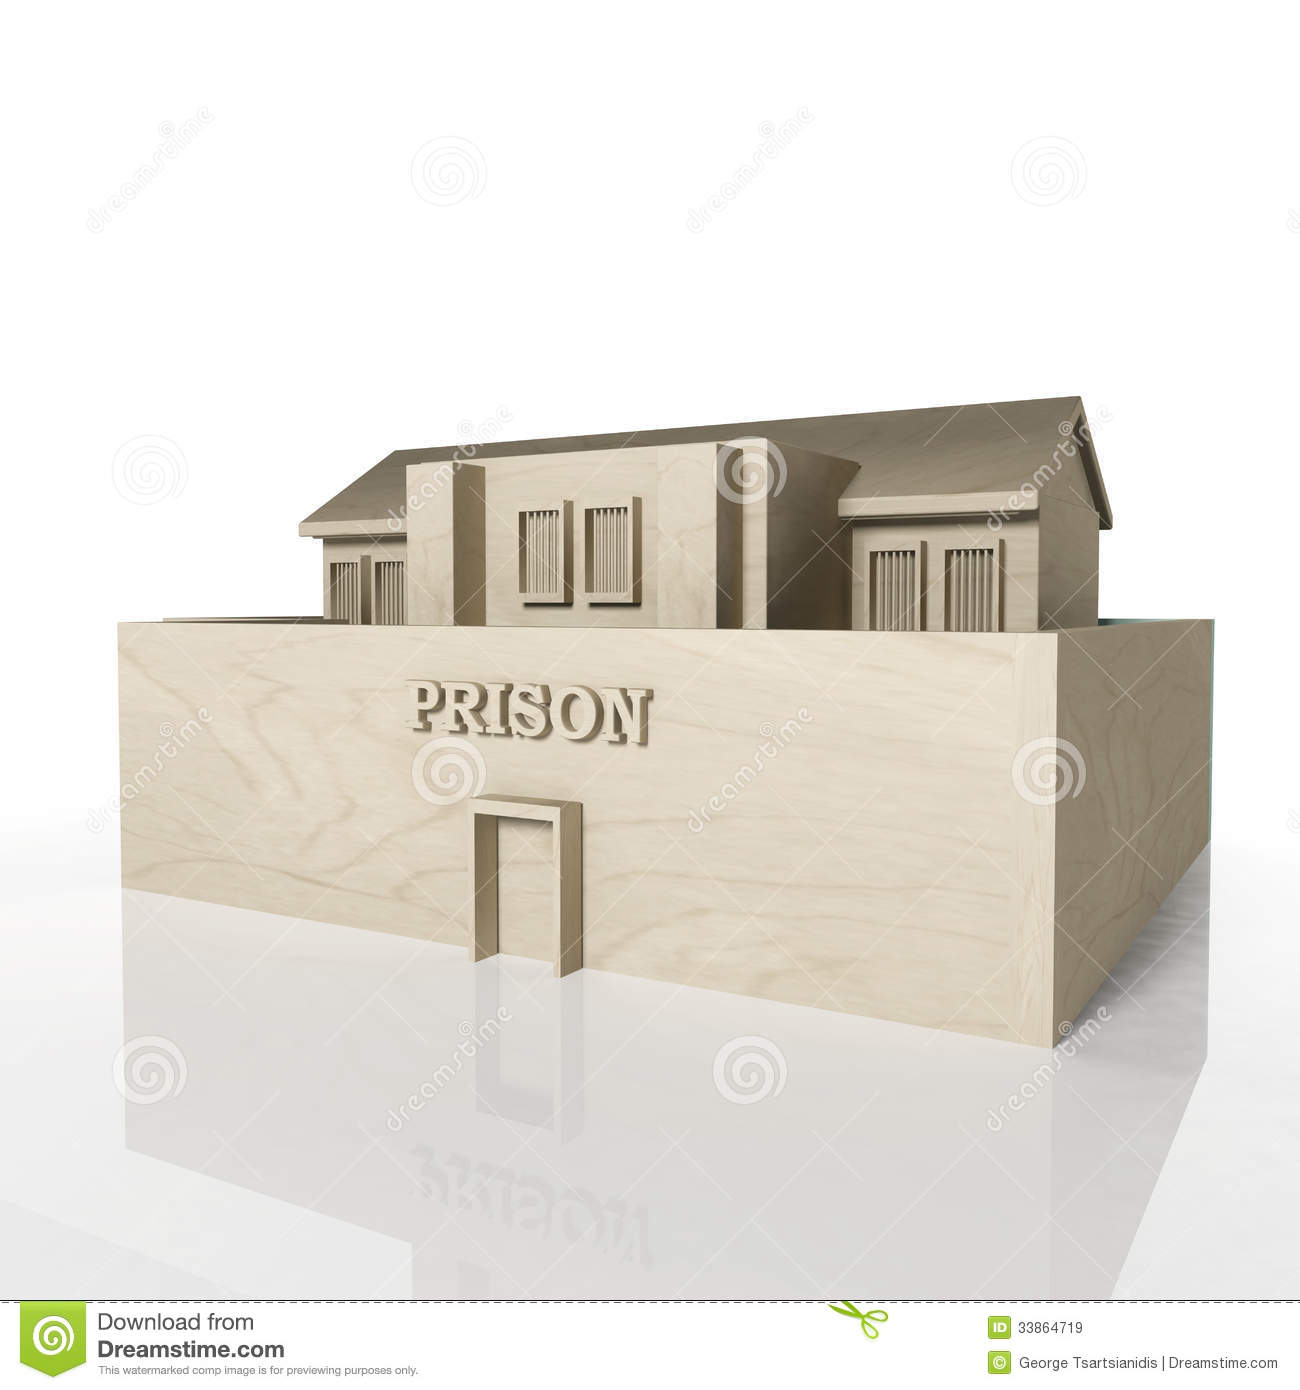 3D Render Of Prison Building With Reflection Royalty Free Stock Images - Image: 33864719